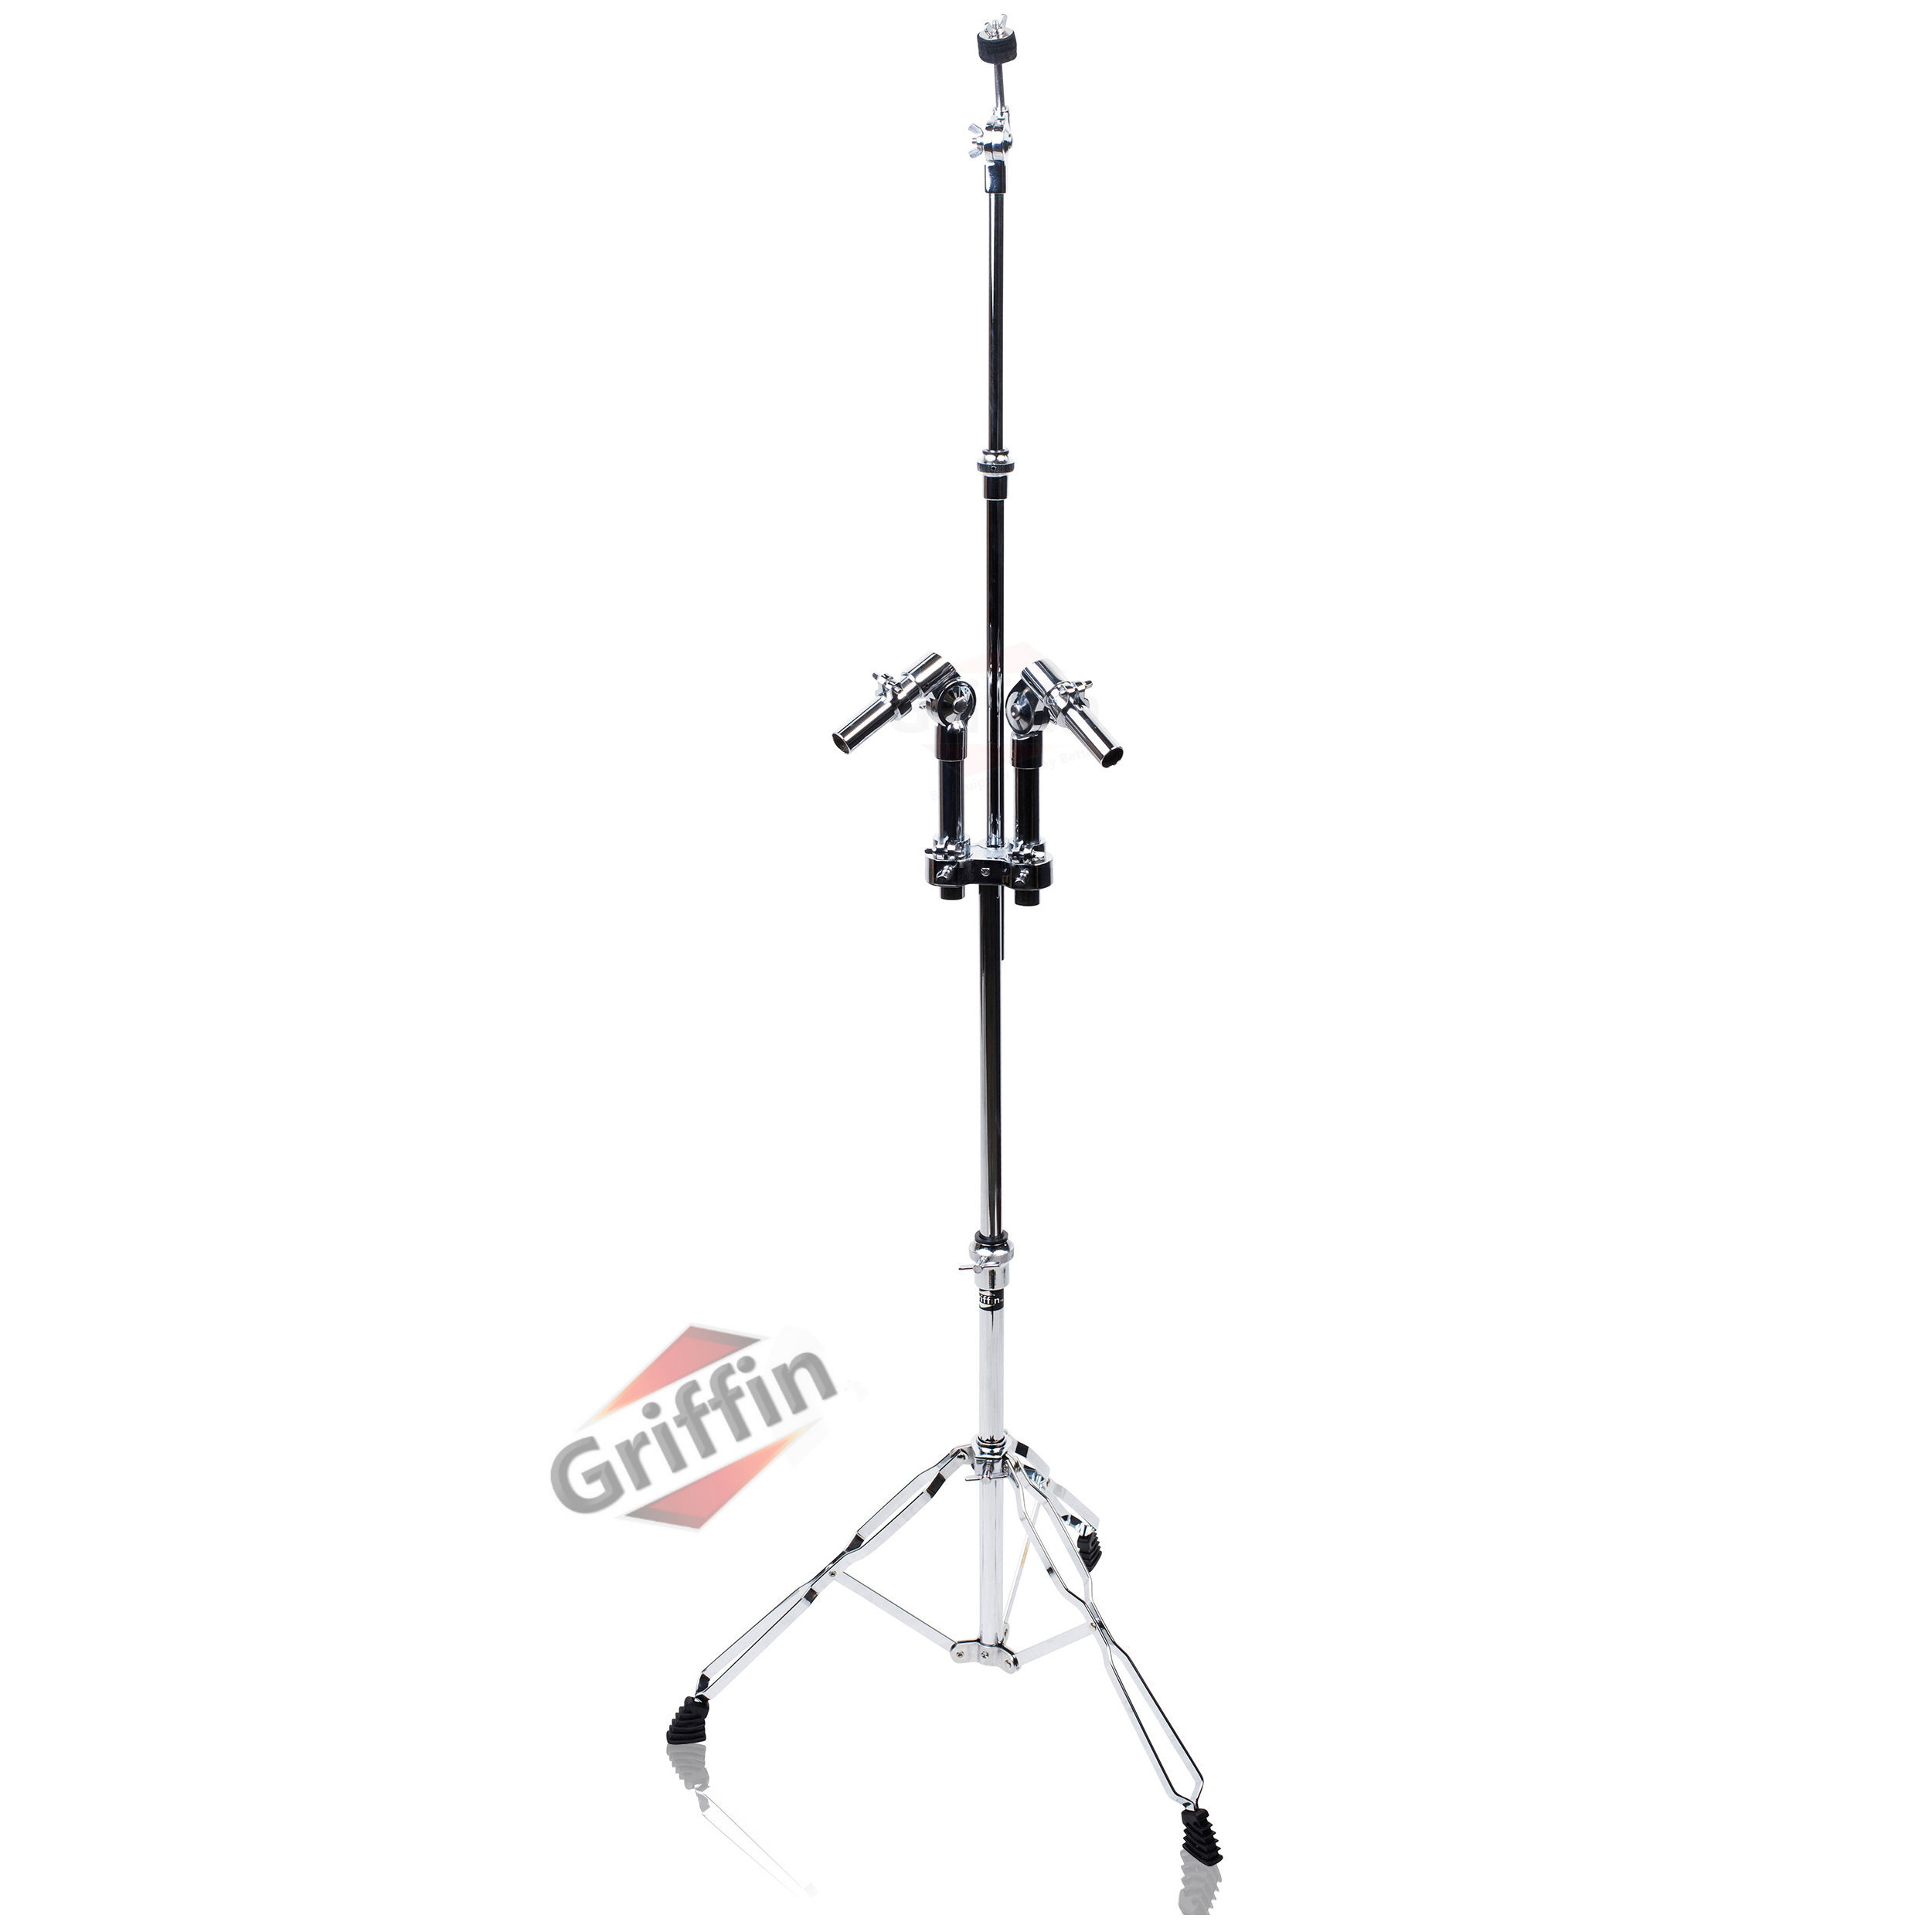 Double Tom Cymbal Stand with Cymbal Arm Heavy-Duty Hardware Mount by Griffin